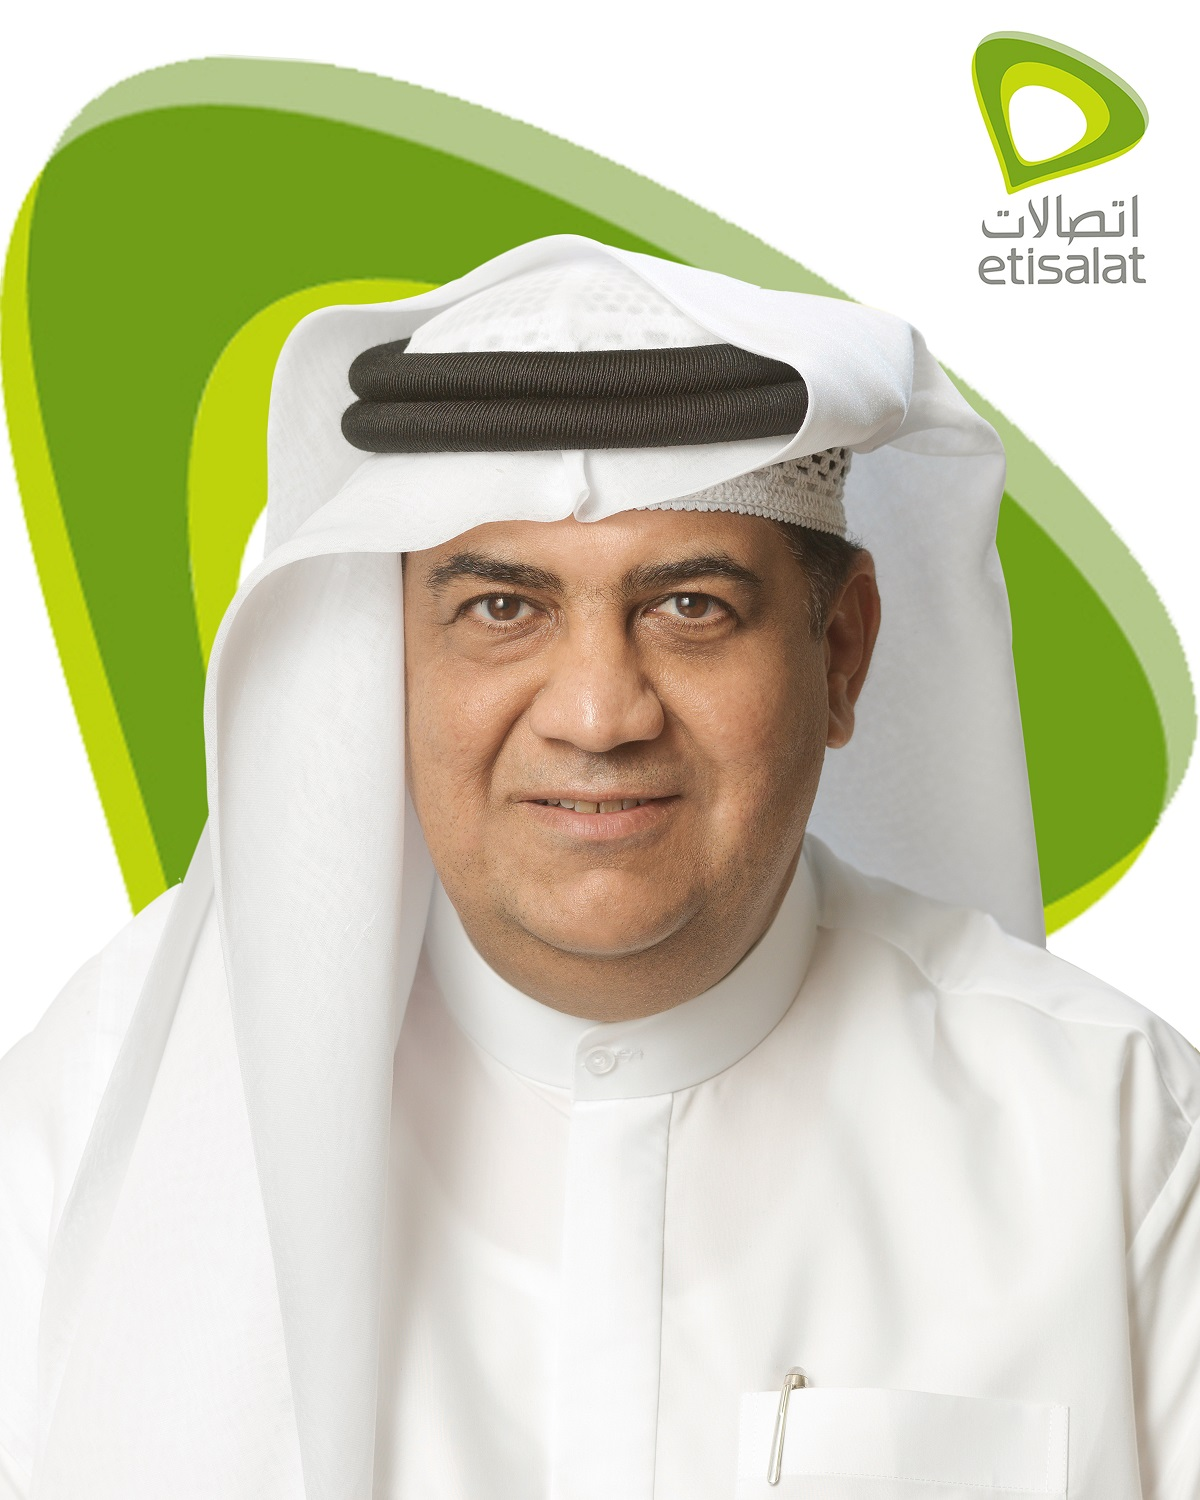 Etisalat comes on board as new Strategic Partner of Dubai Festivals and Retail Establishment during 20th edition of DSF